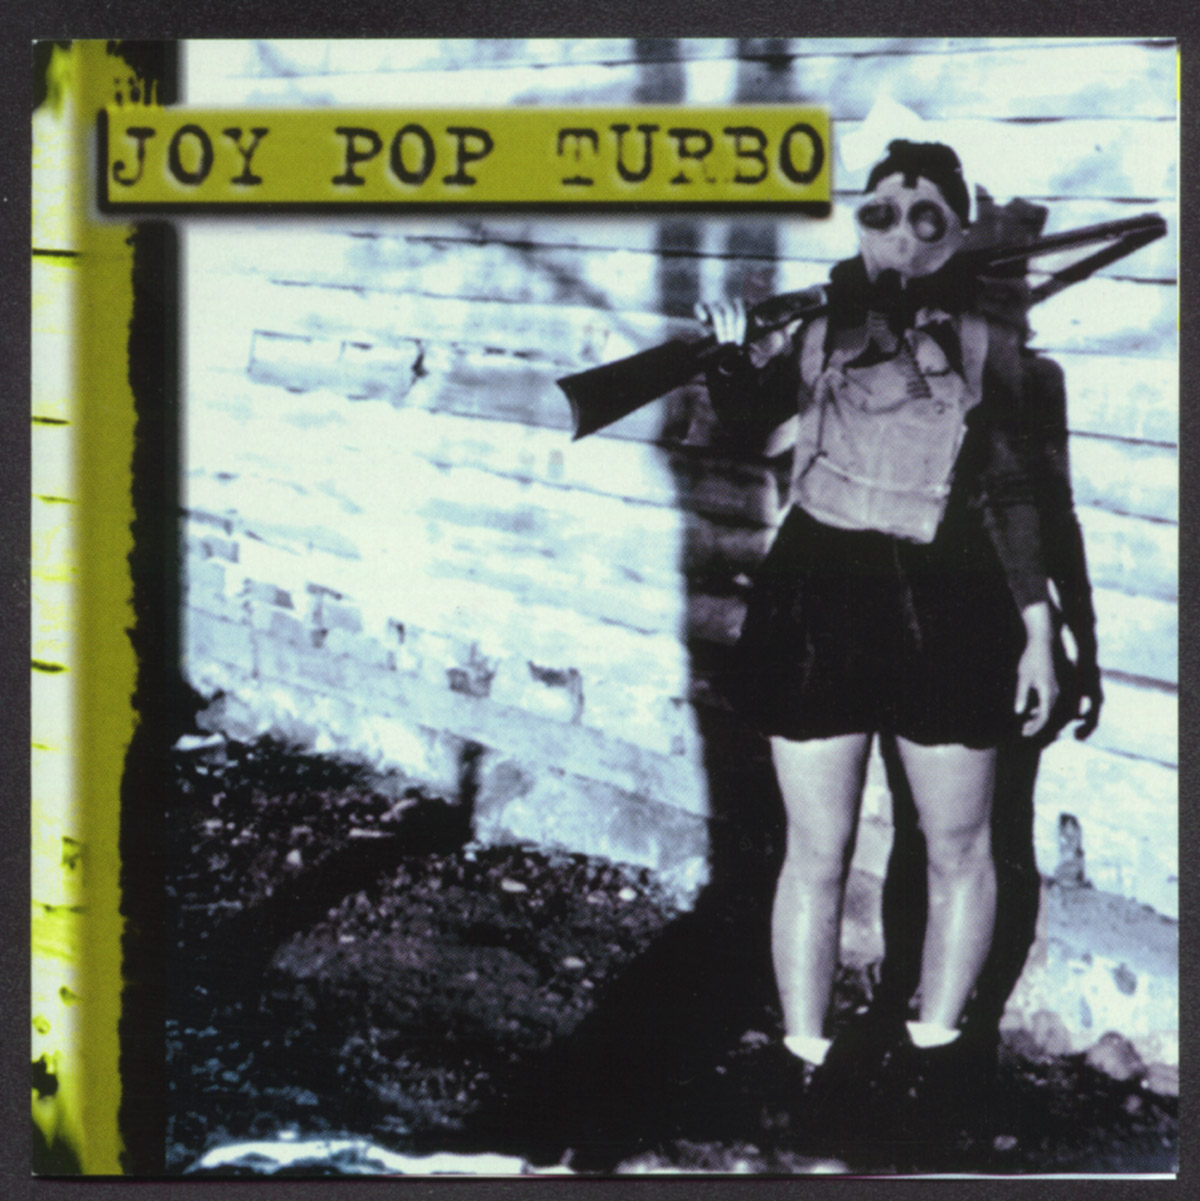 Joy Pop Turbo  -  Joy Pop Turbo  EP Self-released, 1997 Producer: Pete Ficht Pete on bass and backing vocals